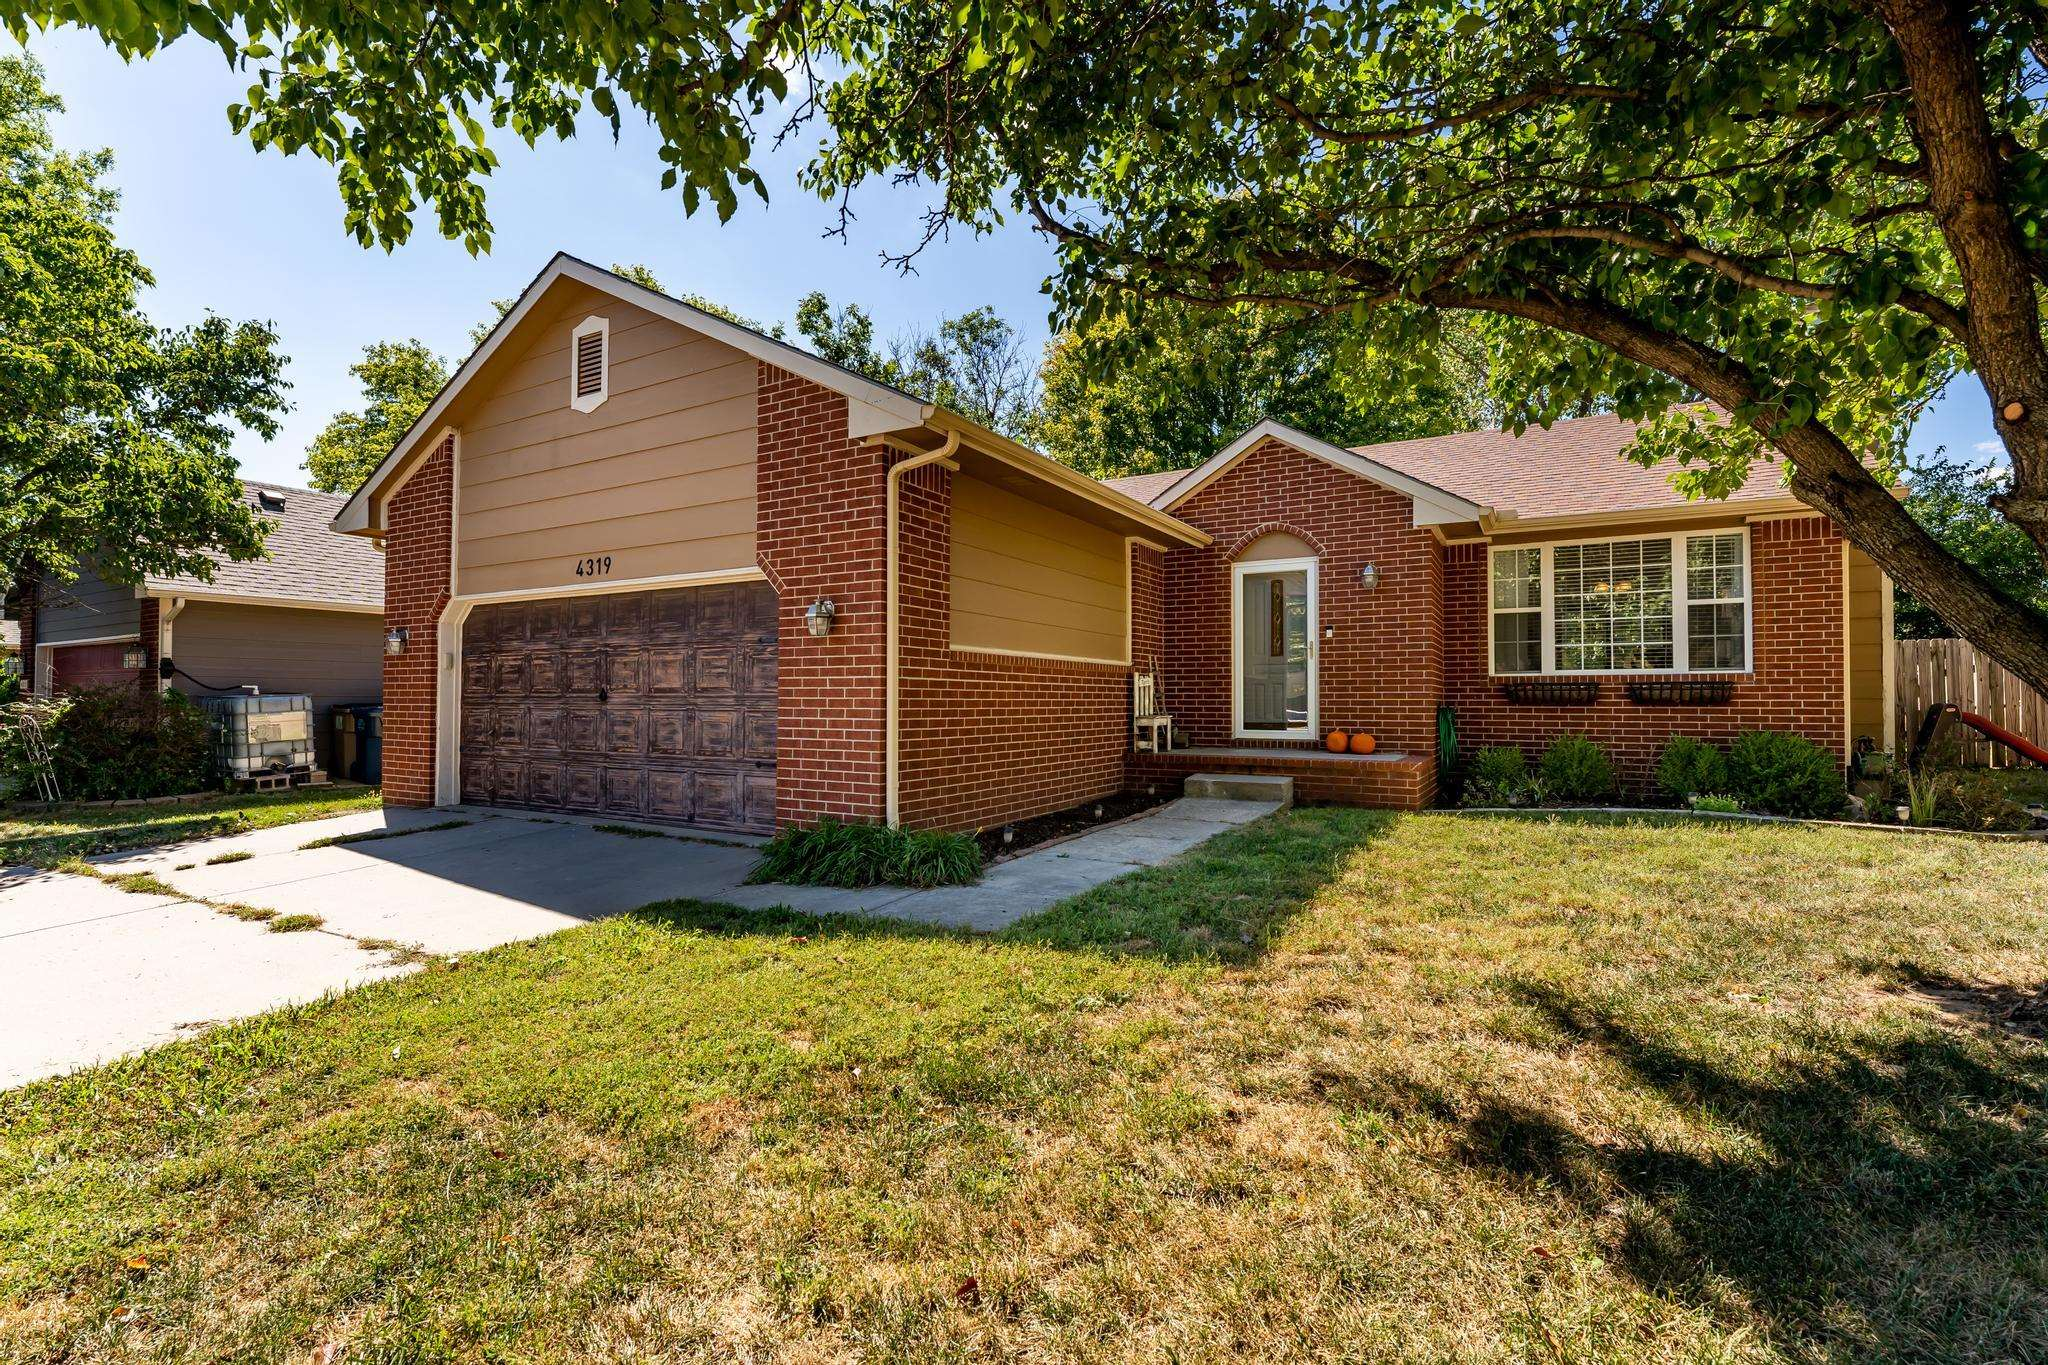 This stunning 4 bed, 3 bath Bel Aire home boasts many beautiful updates and wonderful amenities. As